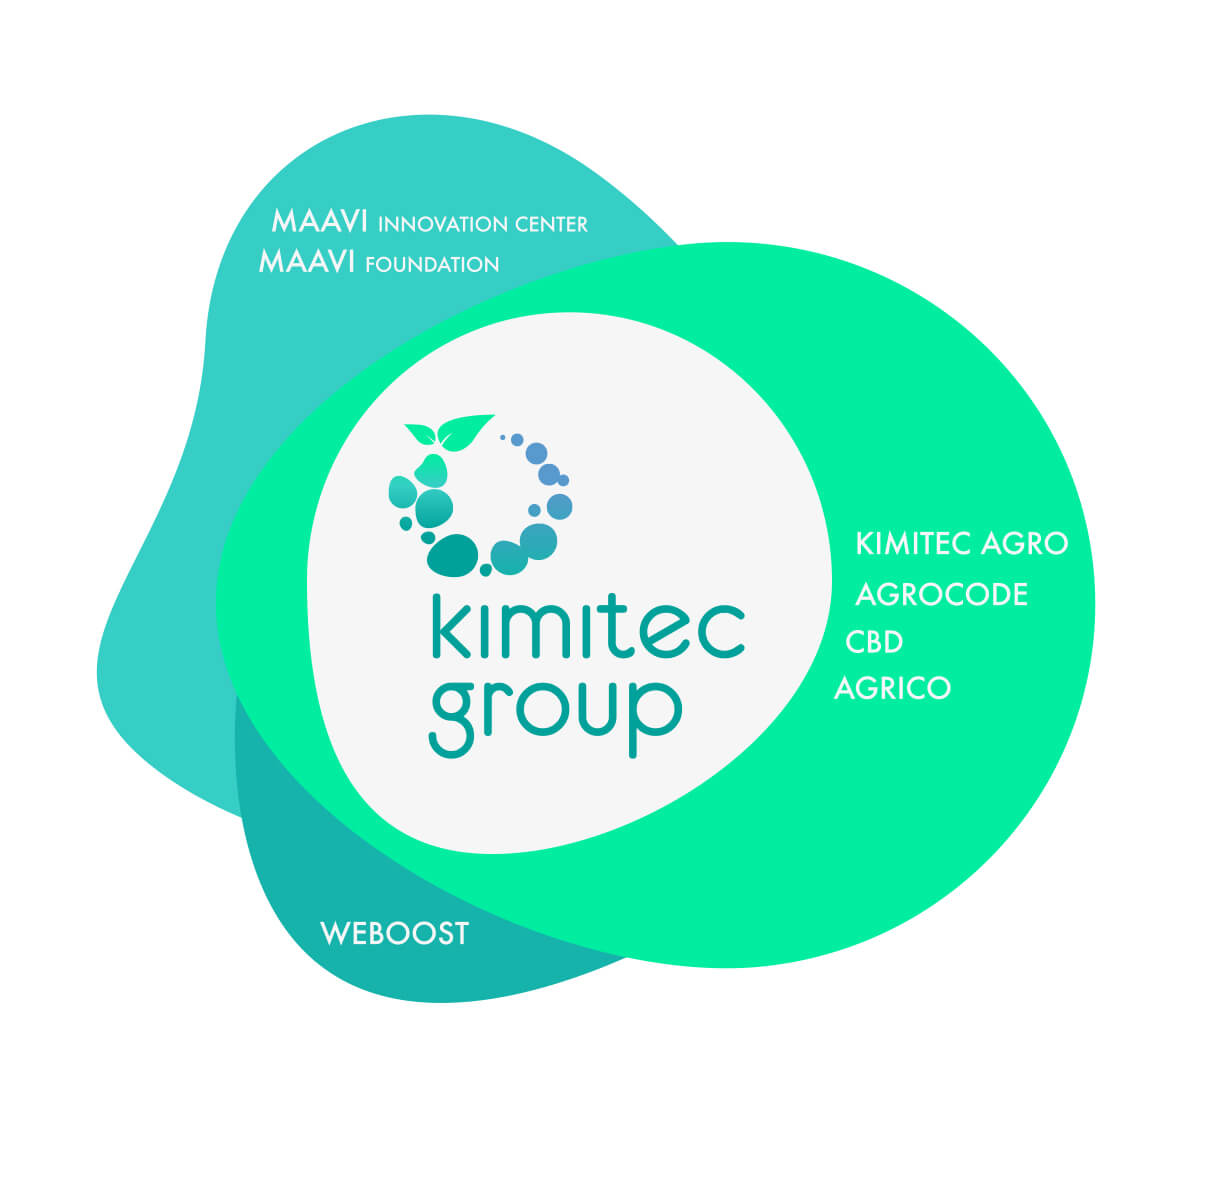 Nós somos parte do Kimitec Group